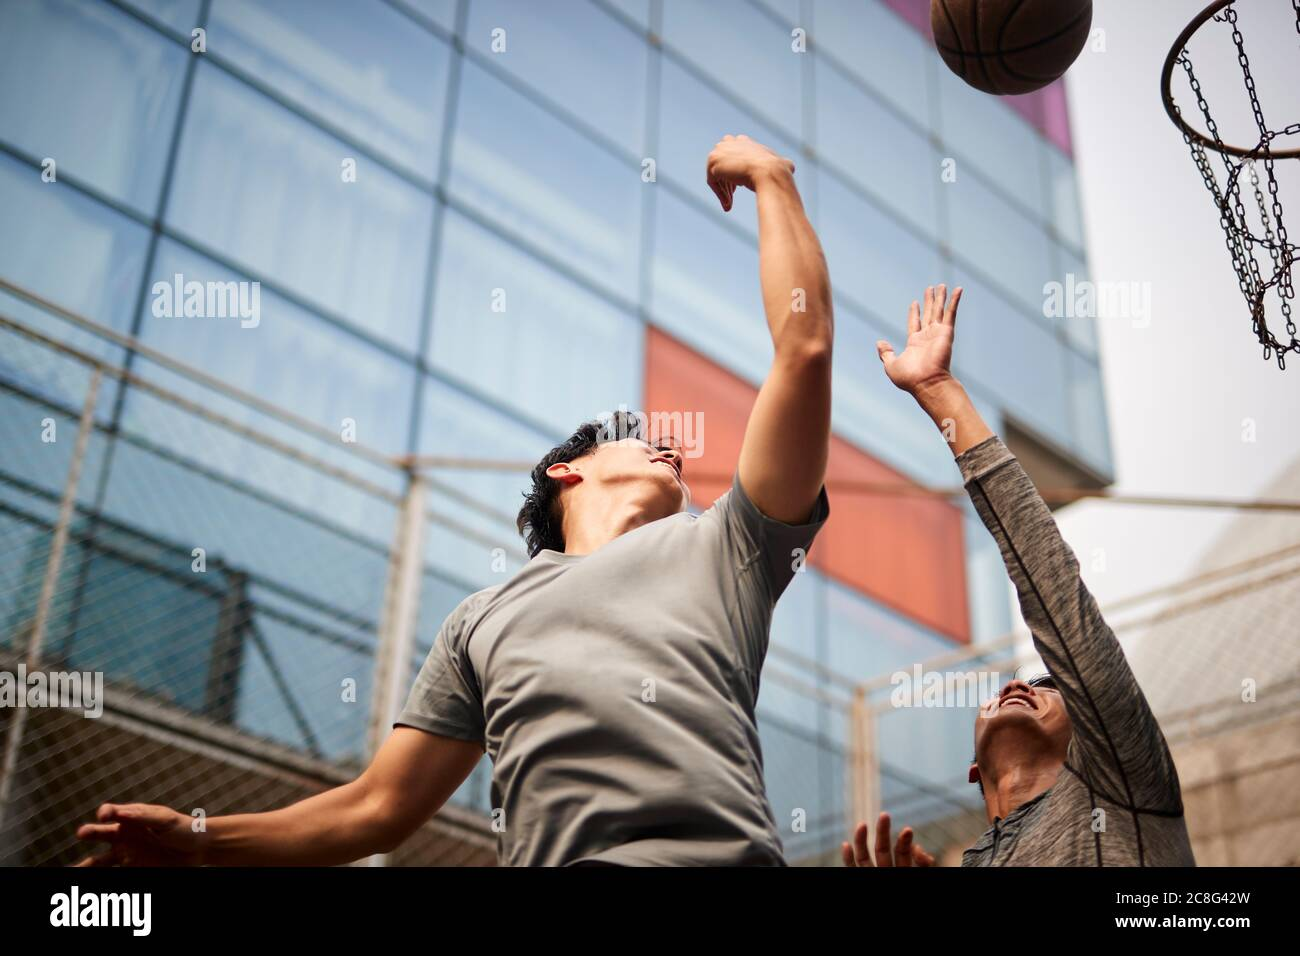 two young asian men playing basketball going up for a rebound on outdoor court Stock Photo